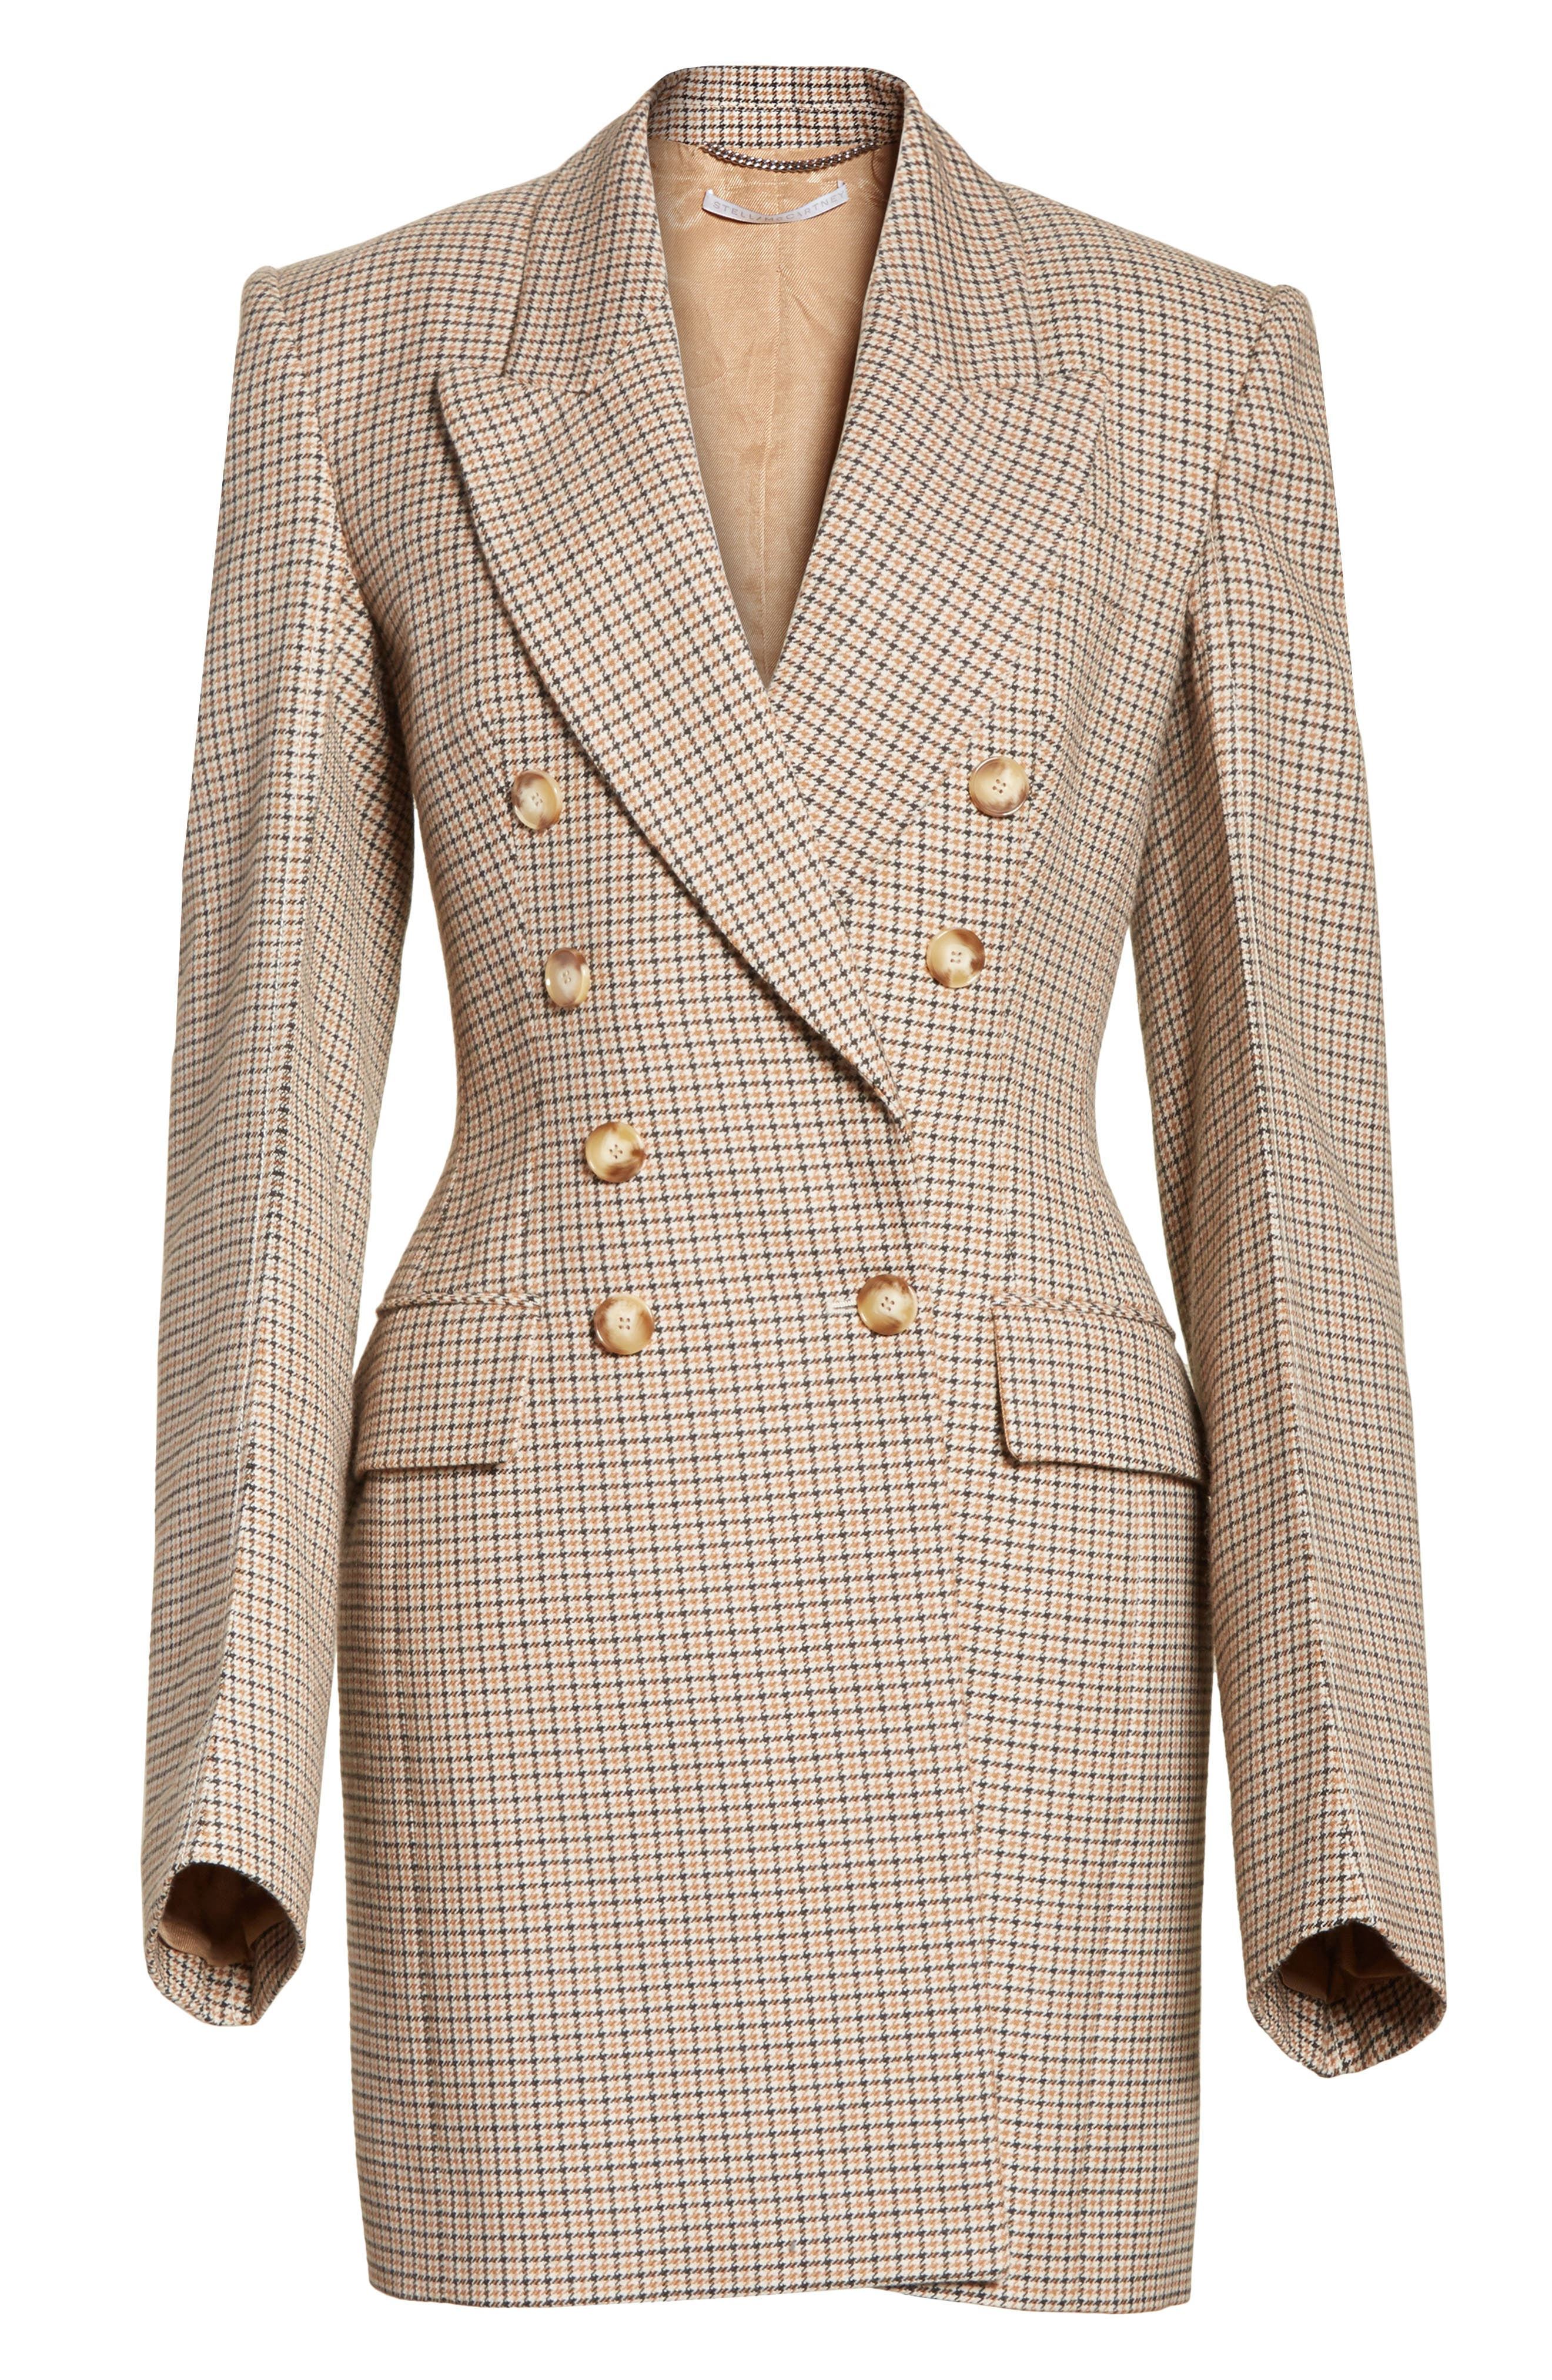 Check Wool Double Breasted Jacket,                             Alternate thumbnail 6, color,